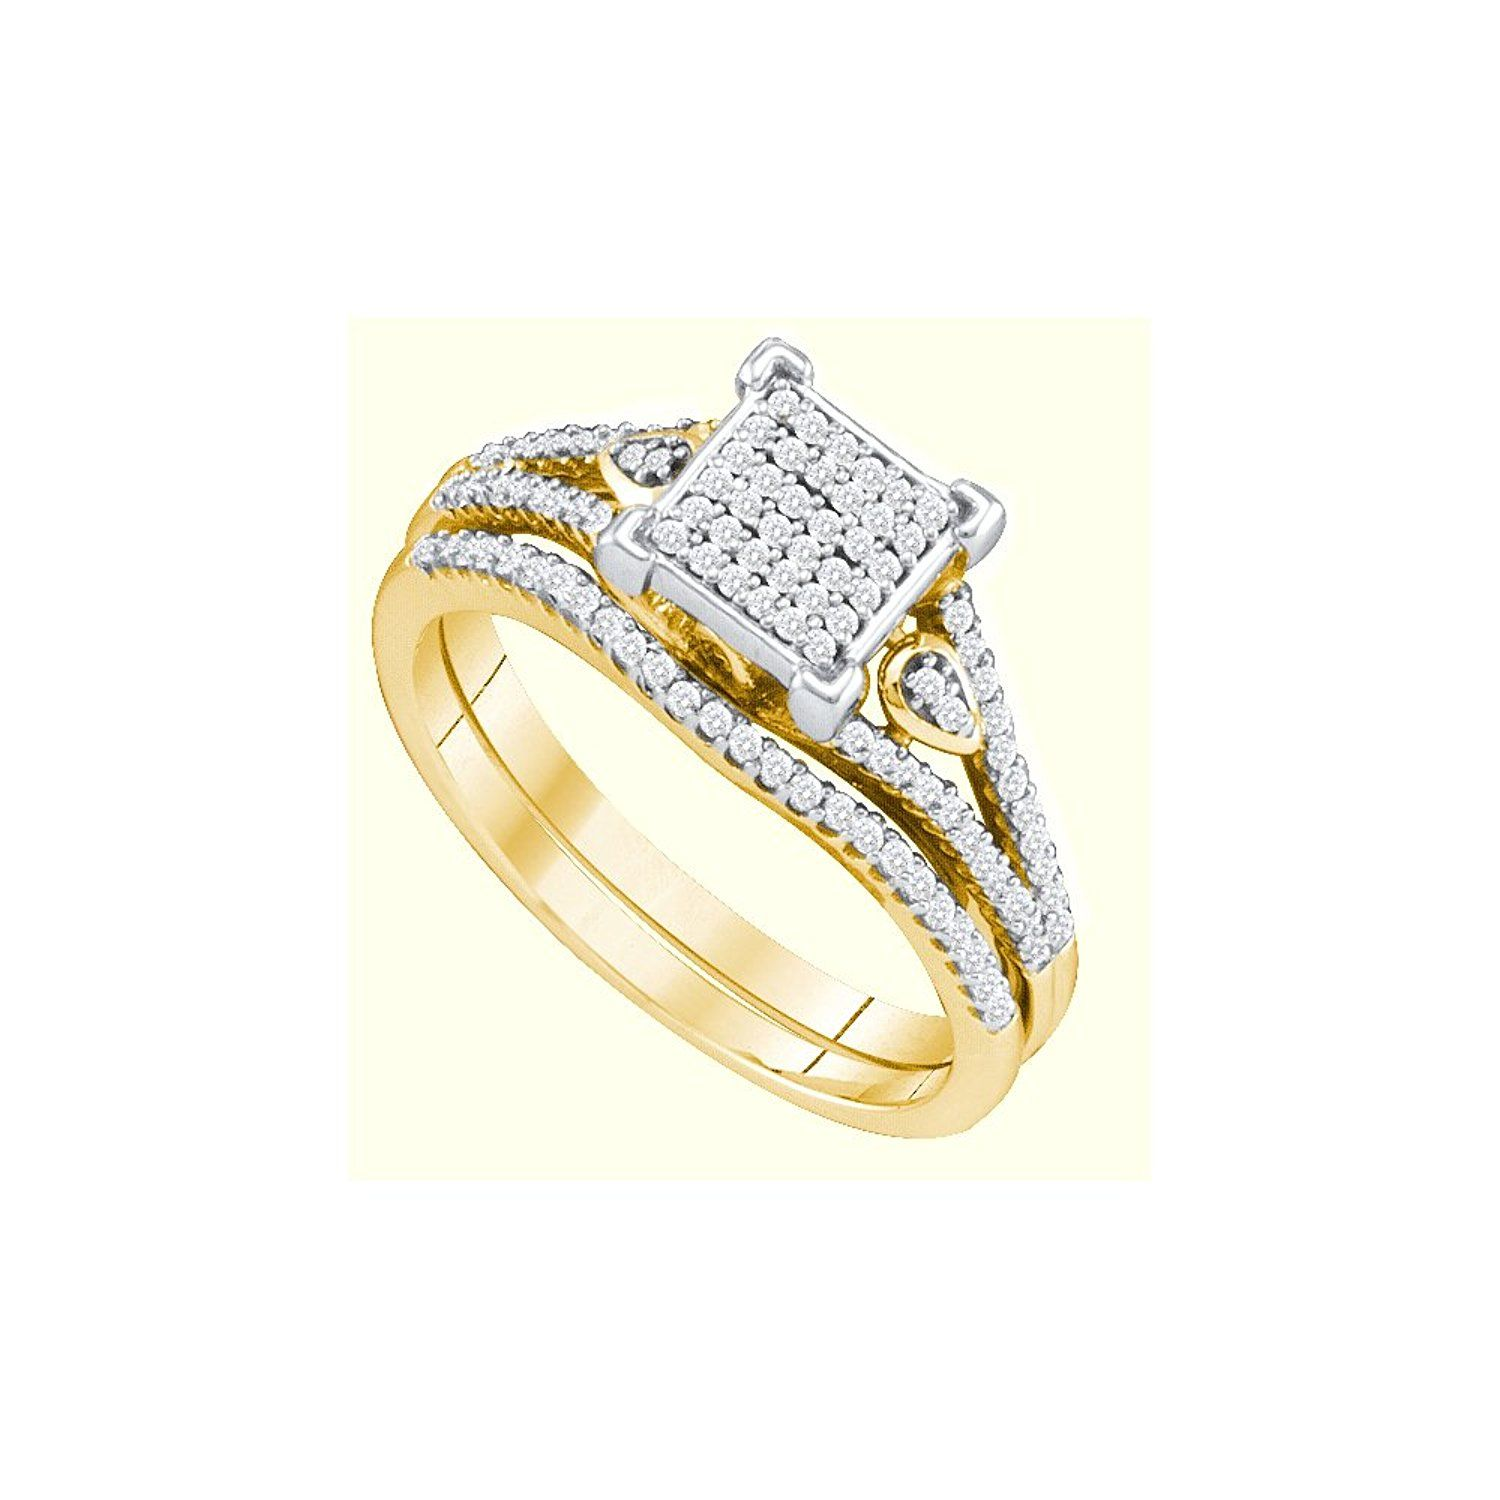 Unique Wedding Ring Sets for His and Her Under $100